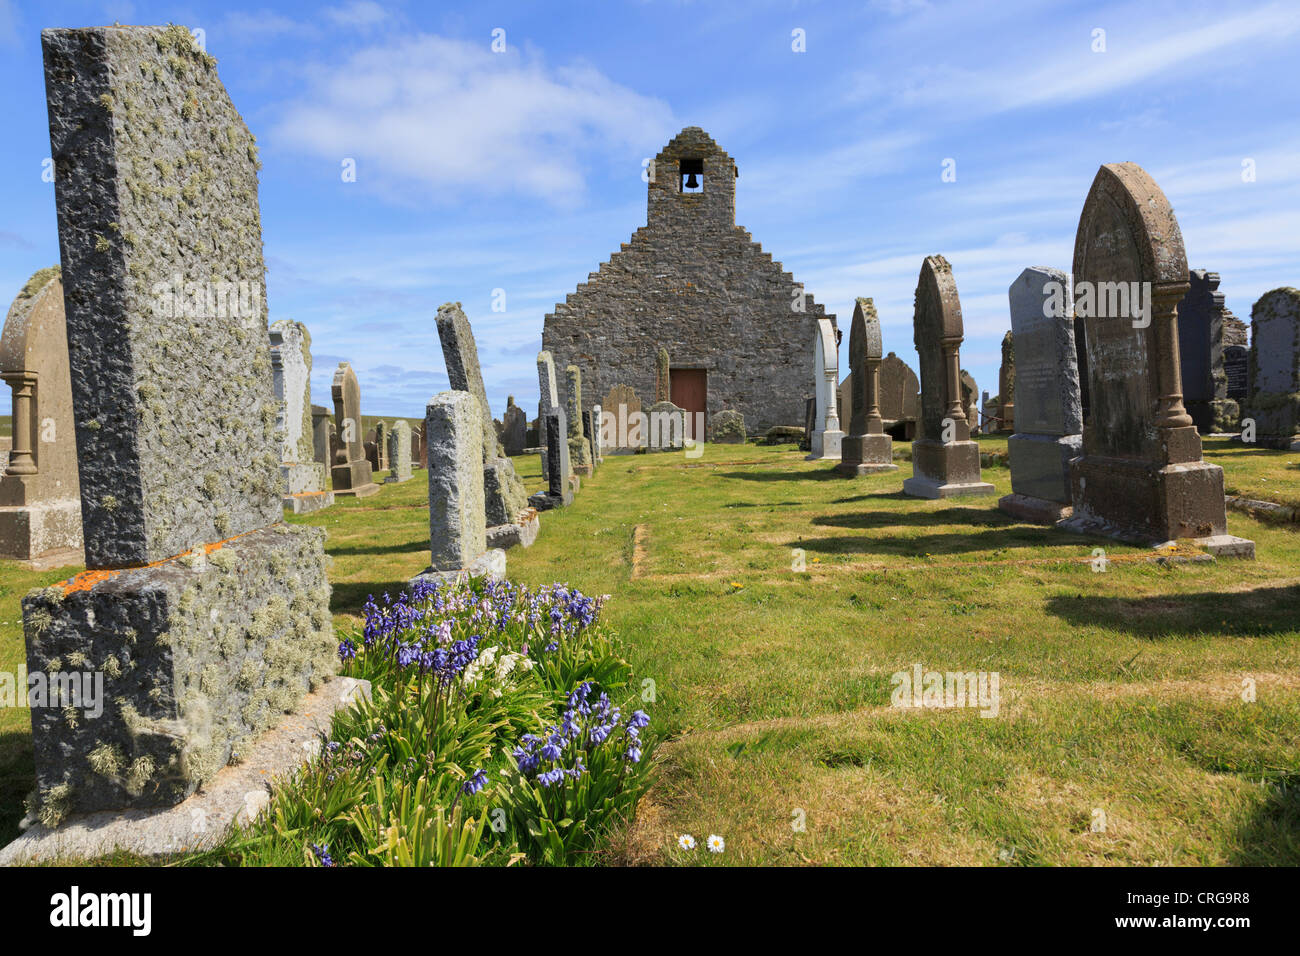 Old St Mary's church and gravestones with bluebells in churchyard at Burwick South Ronaldsay Orkney Islands - Stock Image